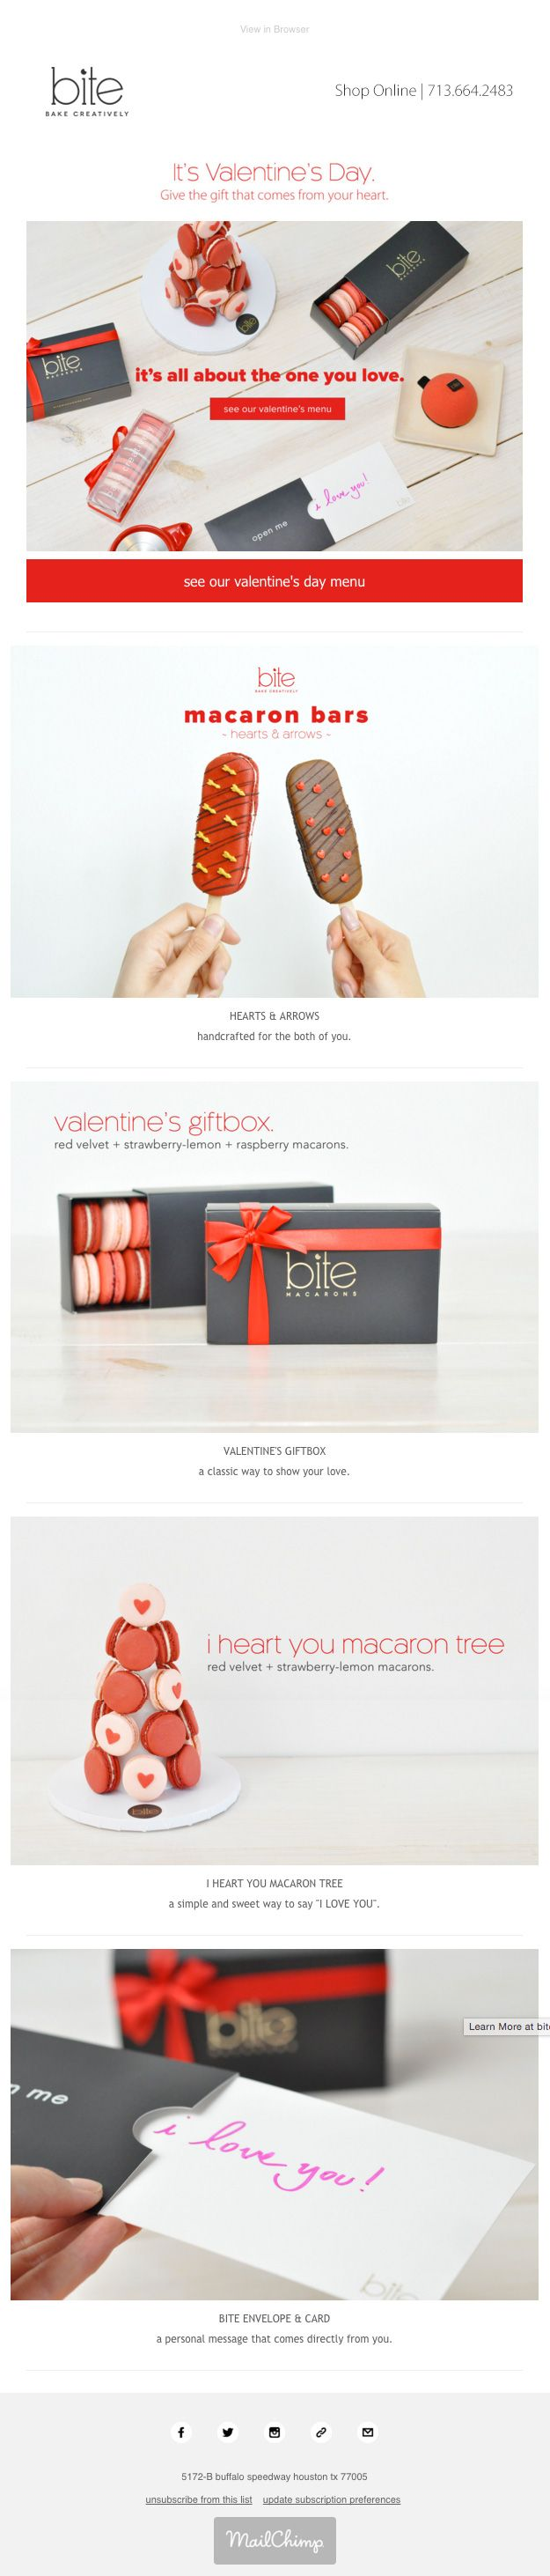 Bite Bake Creatively Newsletter Ideas Example #email #emailmarketing